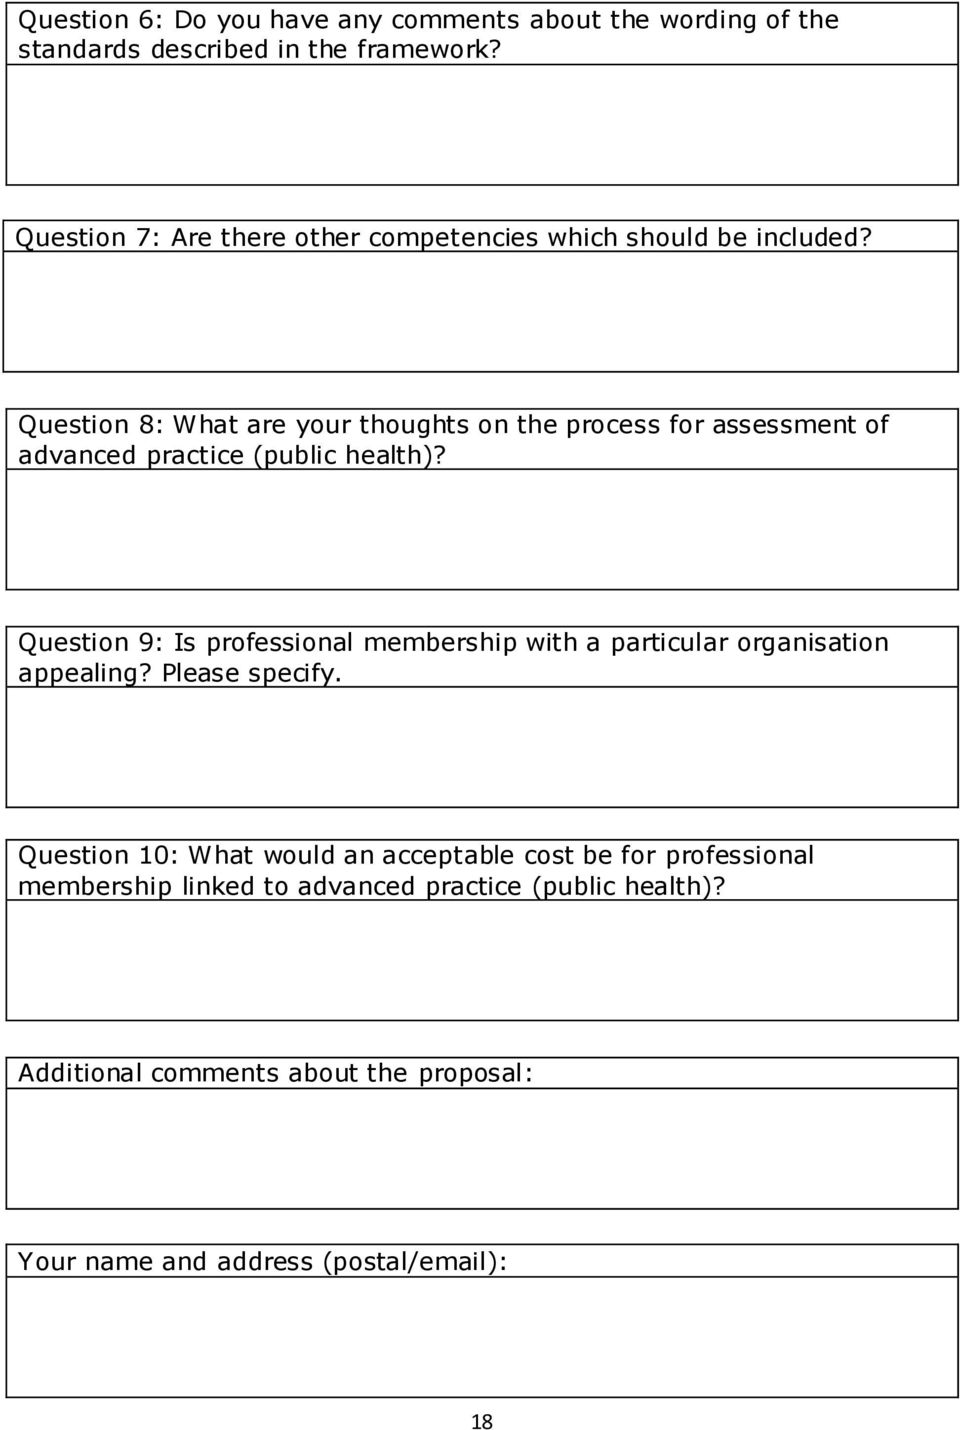 Question 8: What are your thoughts on the process for assessment of advanced practice (public health)?